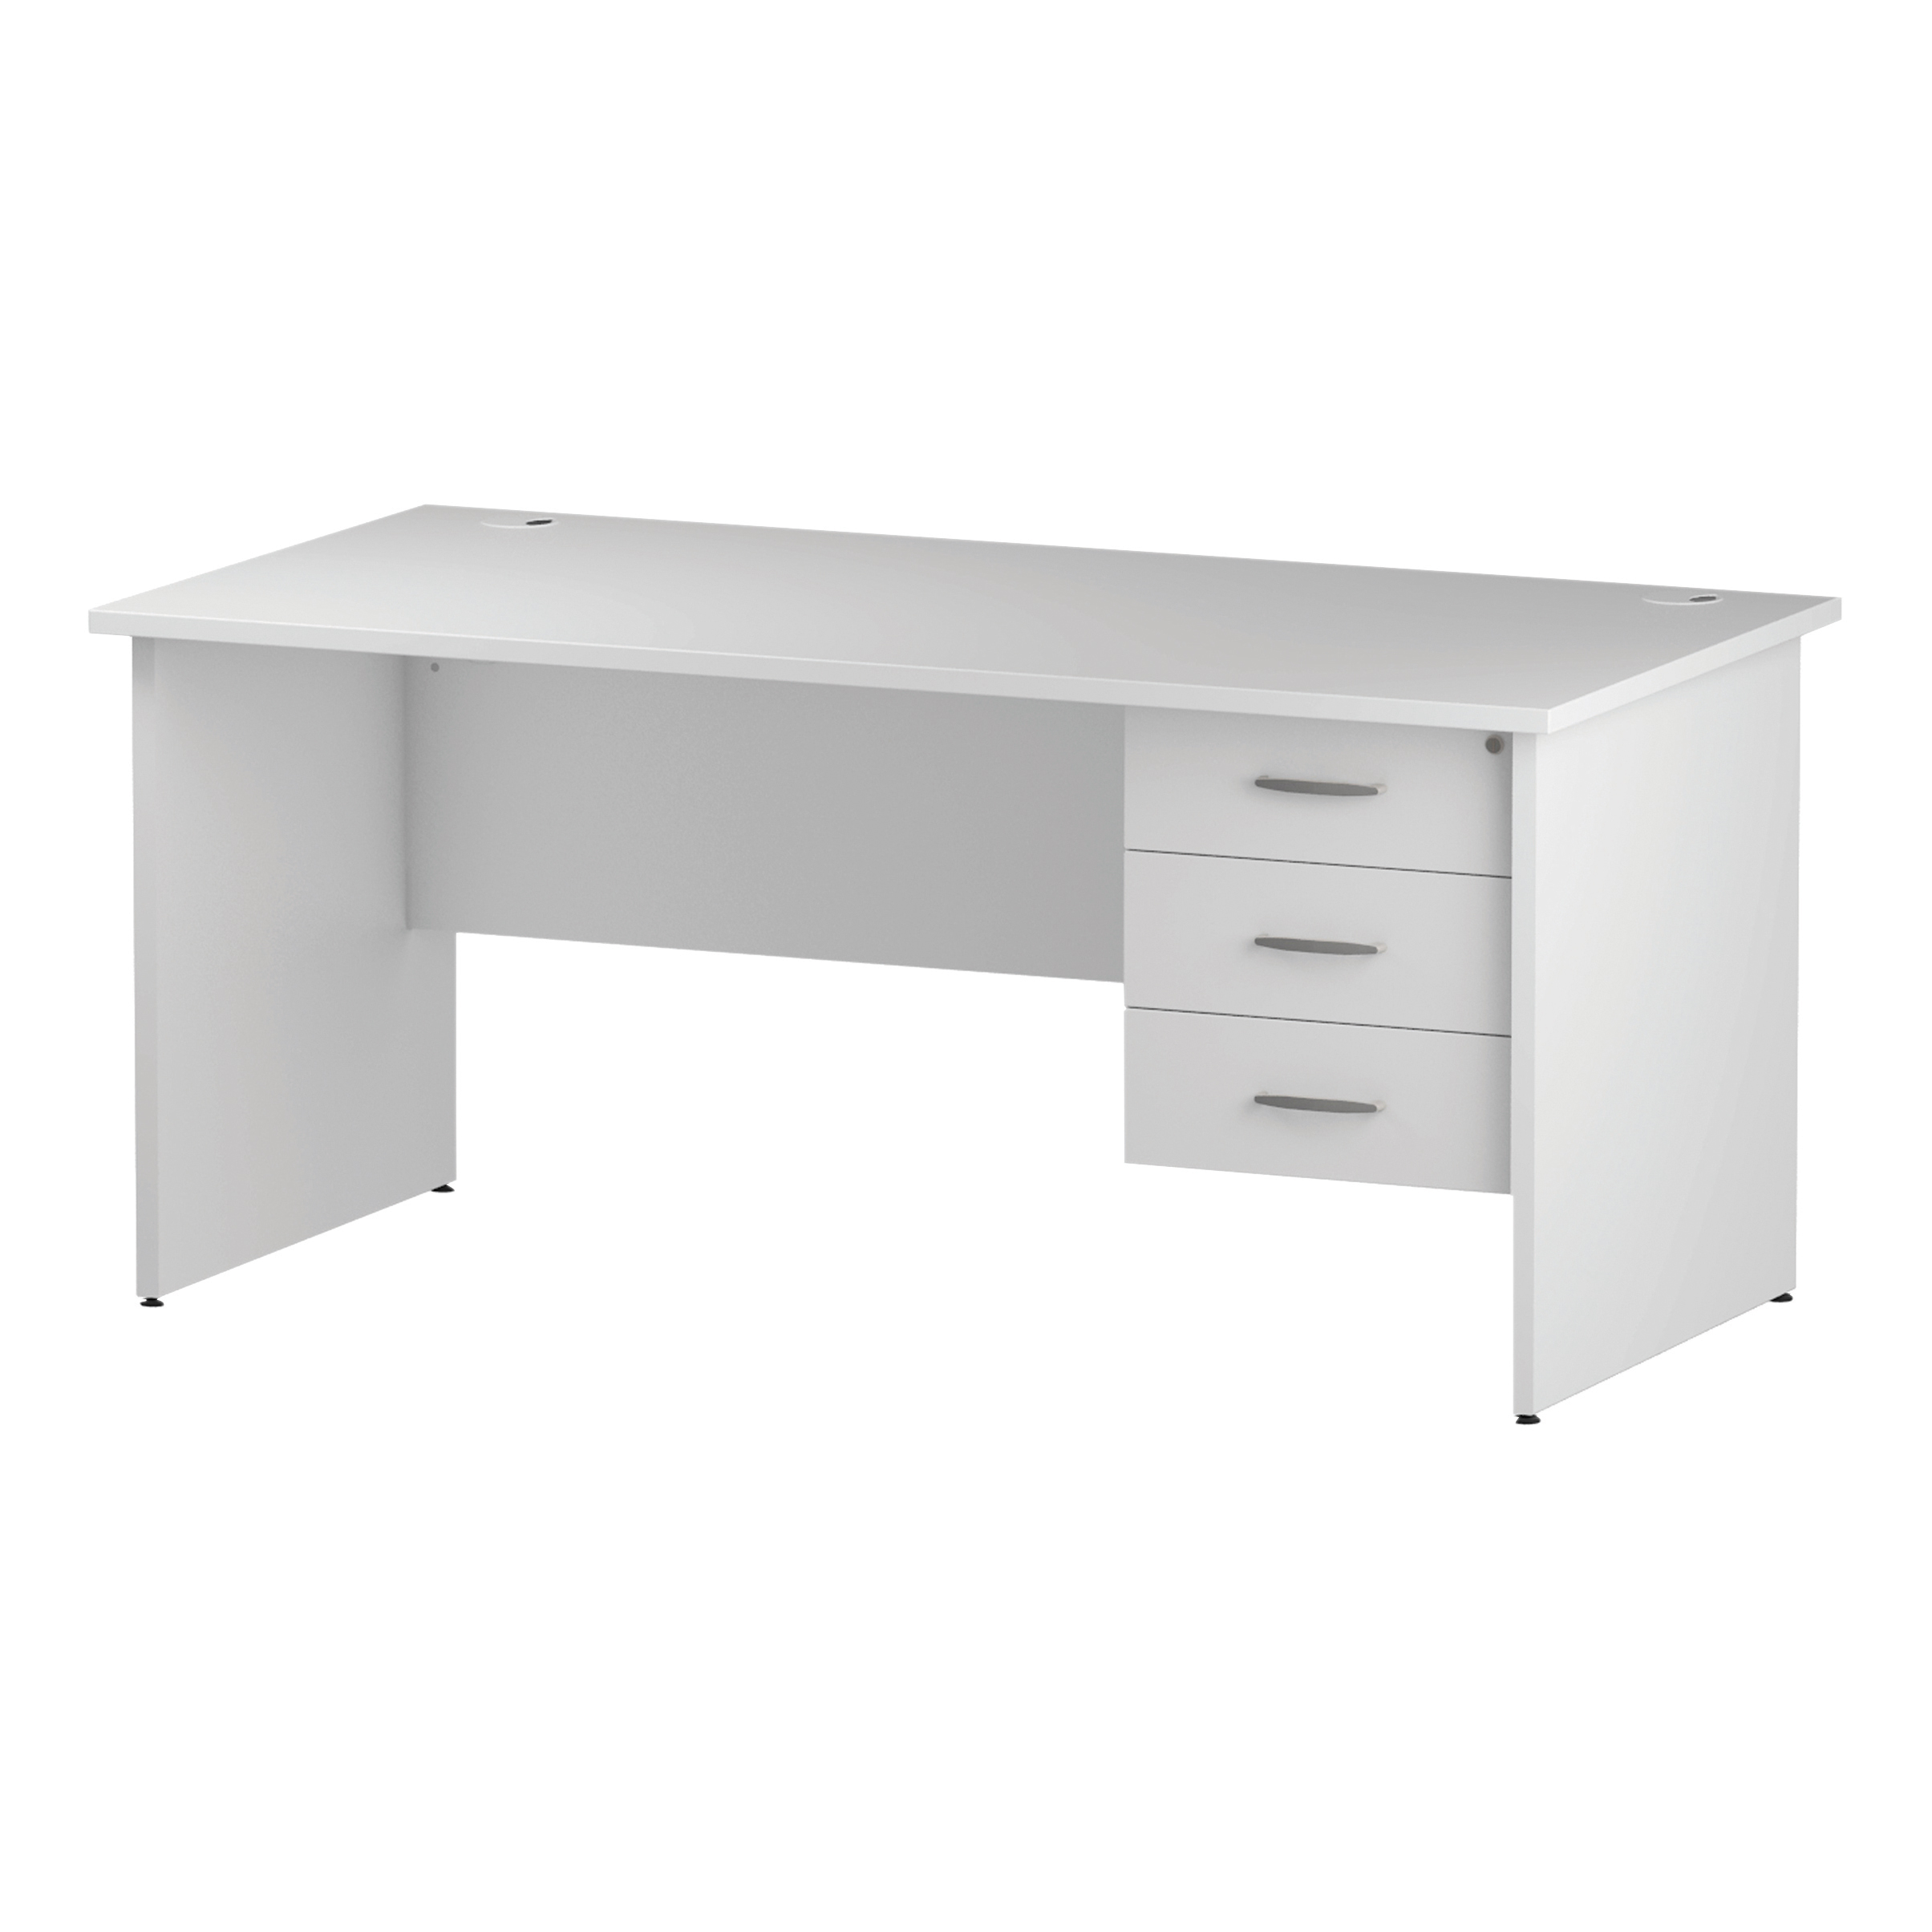 Trexus Rectangular Desk Panel End Leg 1600x800mm Fixed Pedestal 3 Drawers White Ref I002256